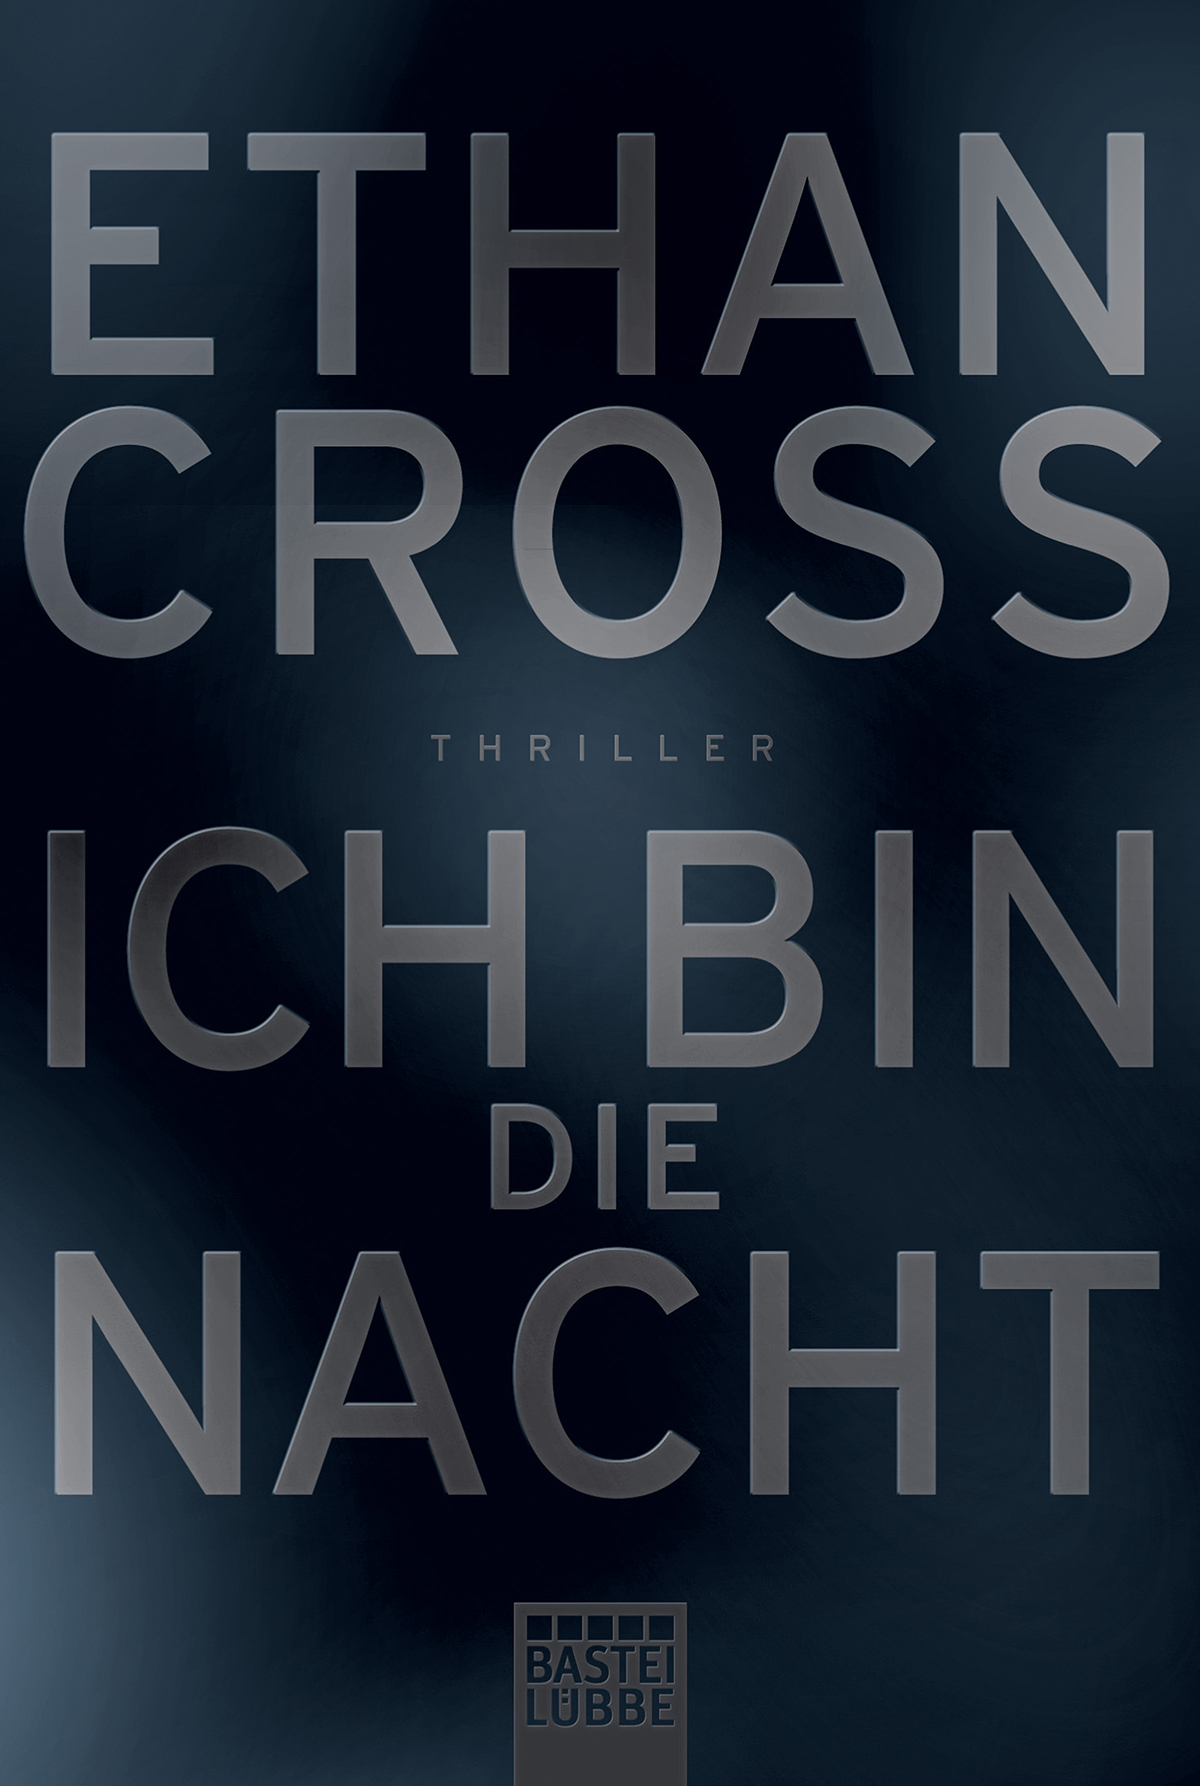 http://sarahsuperwoman.files.wordpress.com/2013/12/1_1_8_5_6_4_2_978-3-404-16923-8-cross-ich-bin-die-nacht-org.jpg